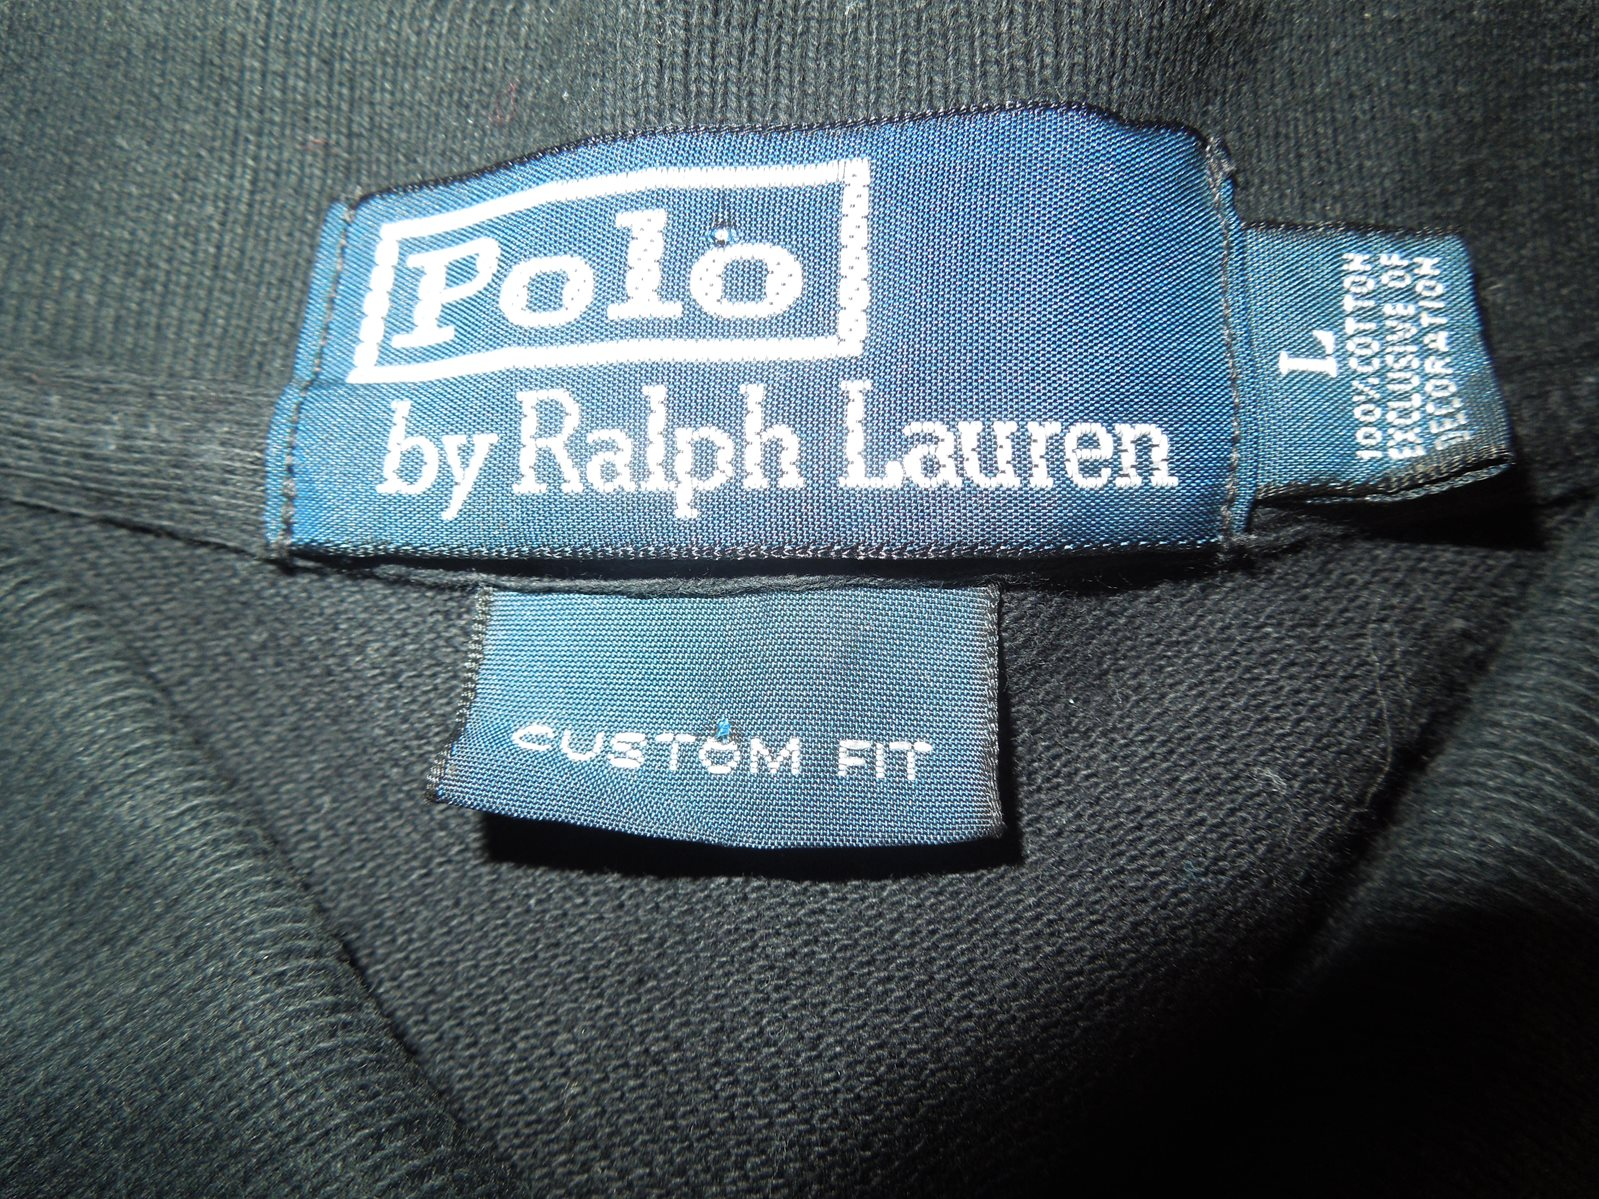 Ralph Lauren {polo} - The Loft, London